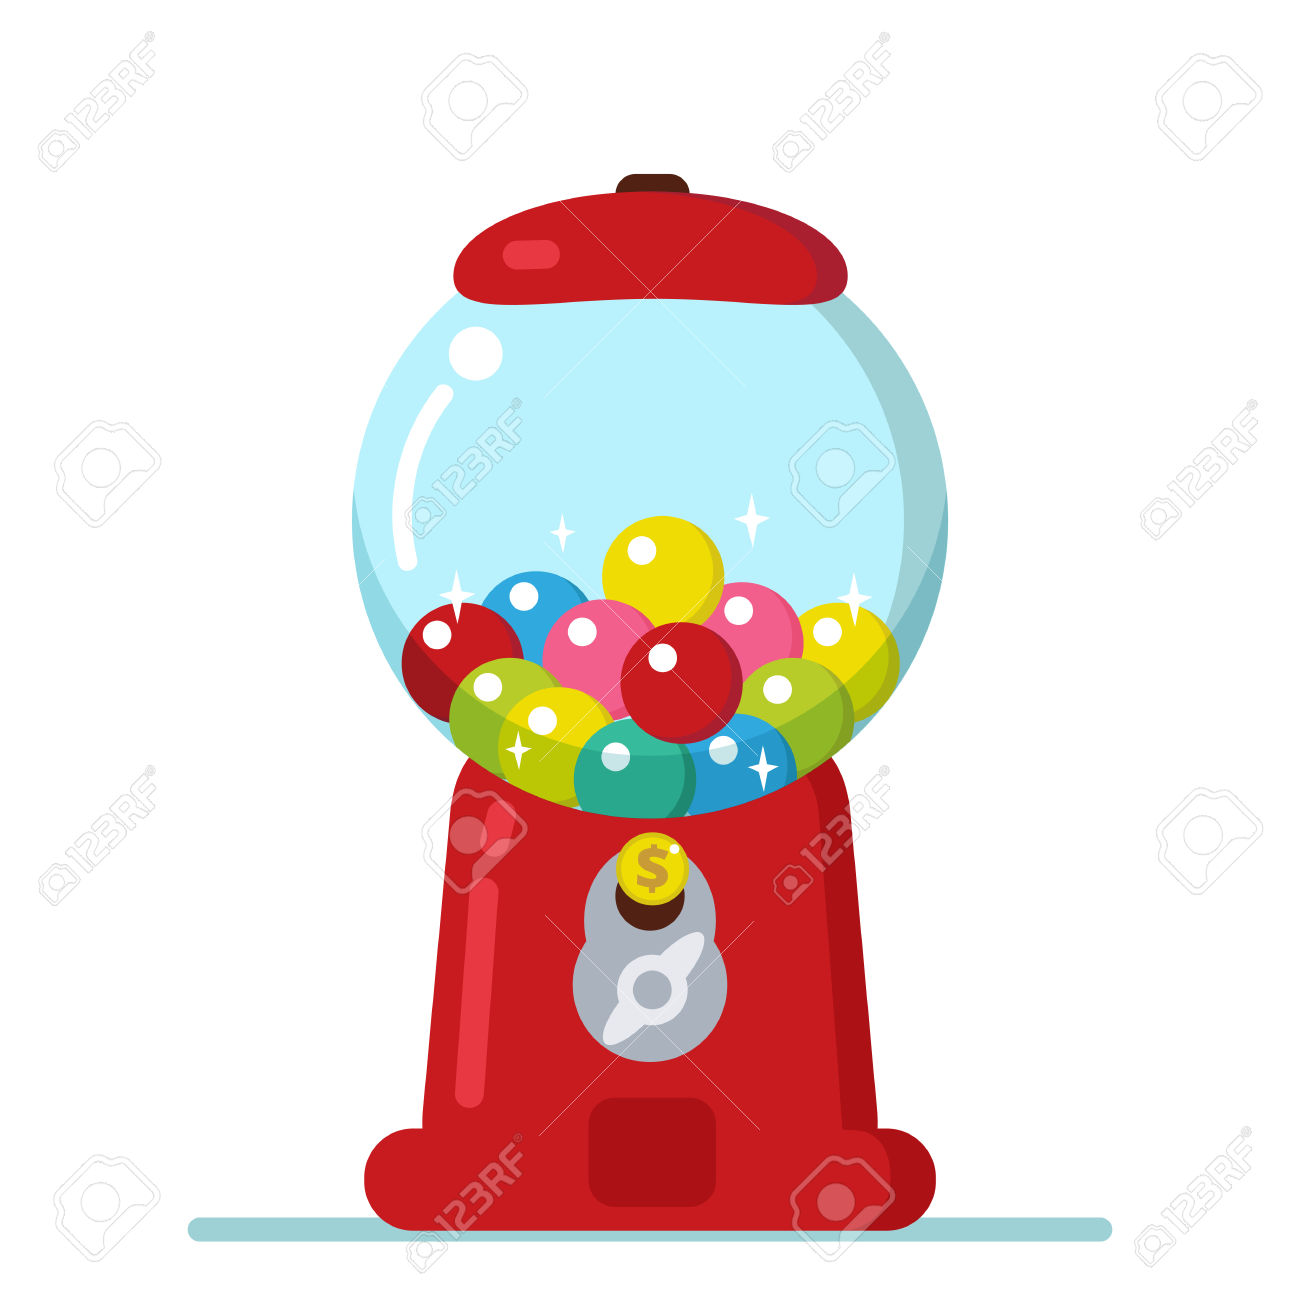 clip art free download Gumball machine clipart retro. Free download best